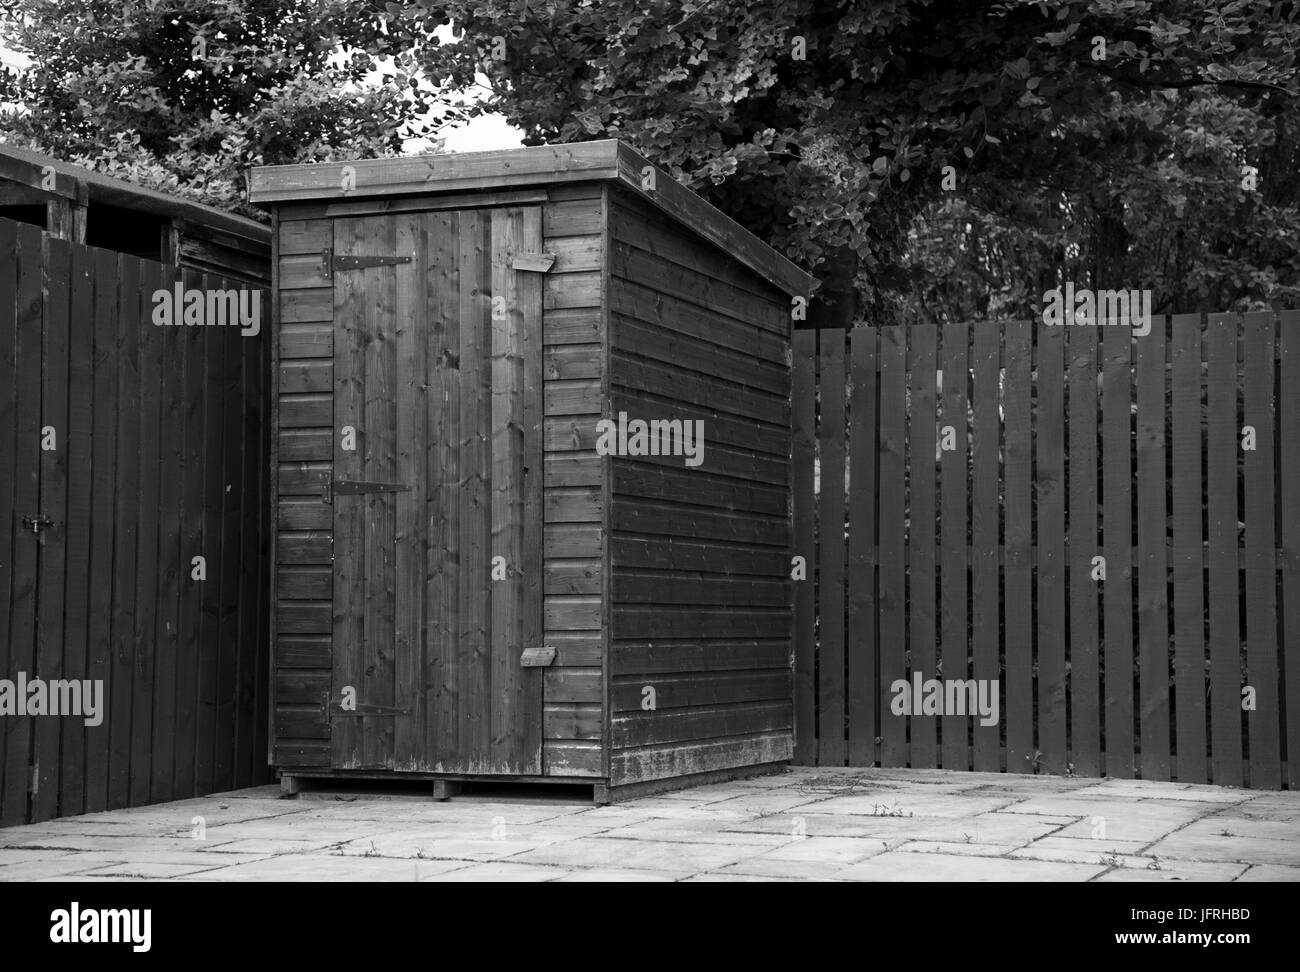 https www alamy com stock photo black and white image of a small wooden garden shed on a patio in 147421329 html